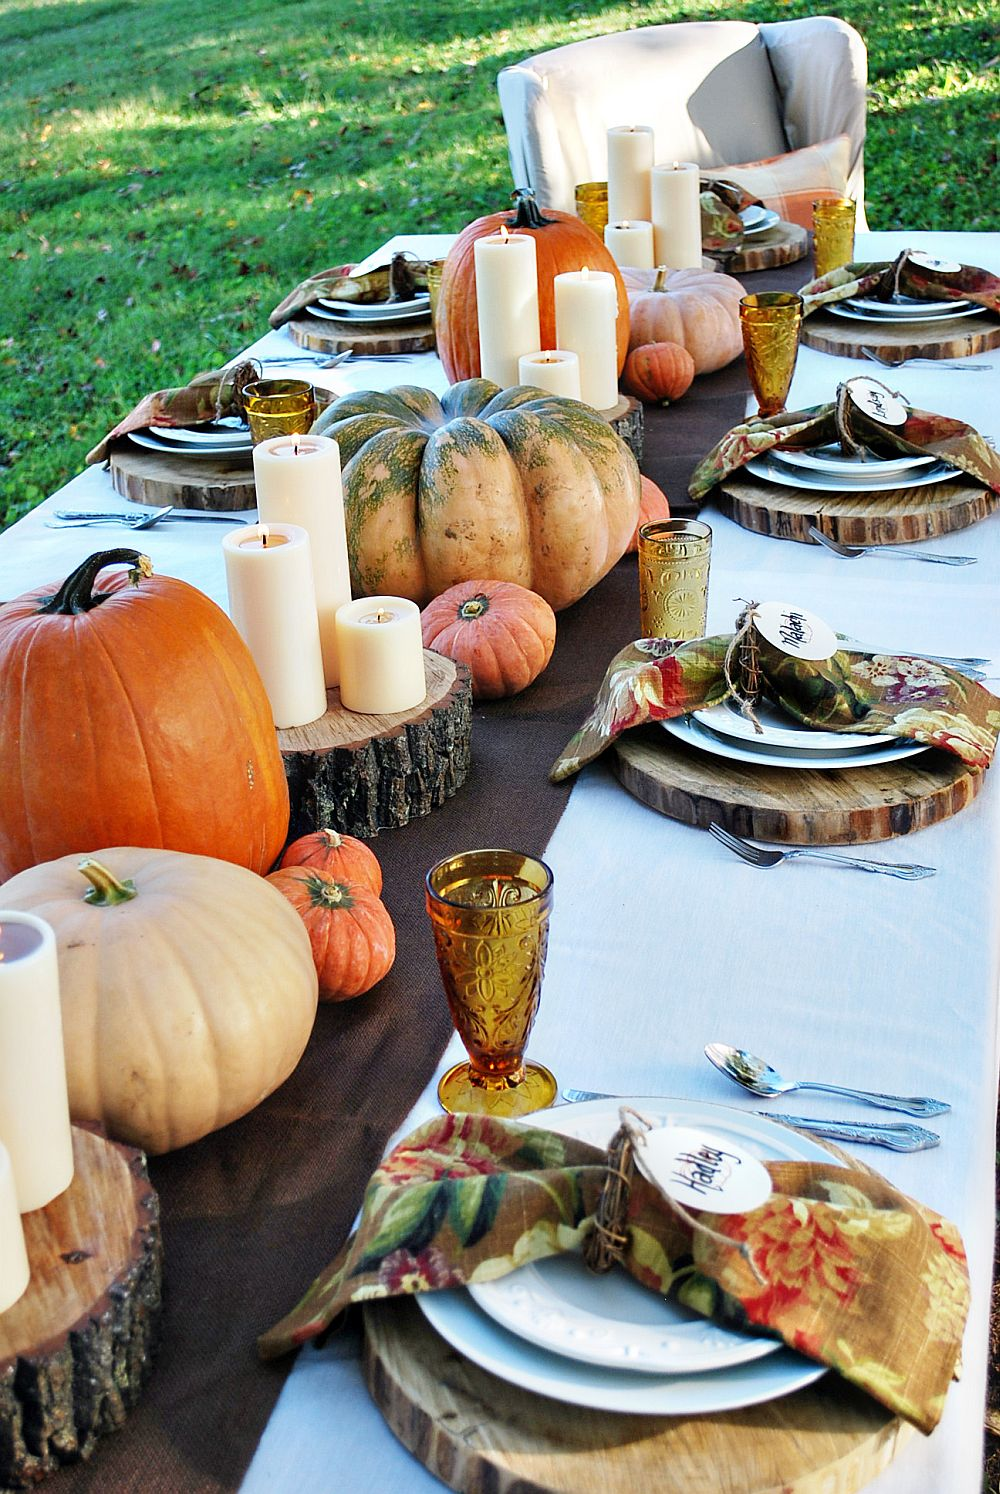 Modern and rustic touches come together at this outdoor Thanksgiving table